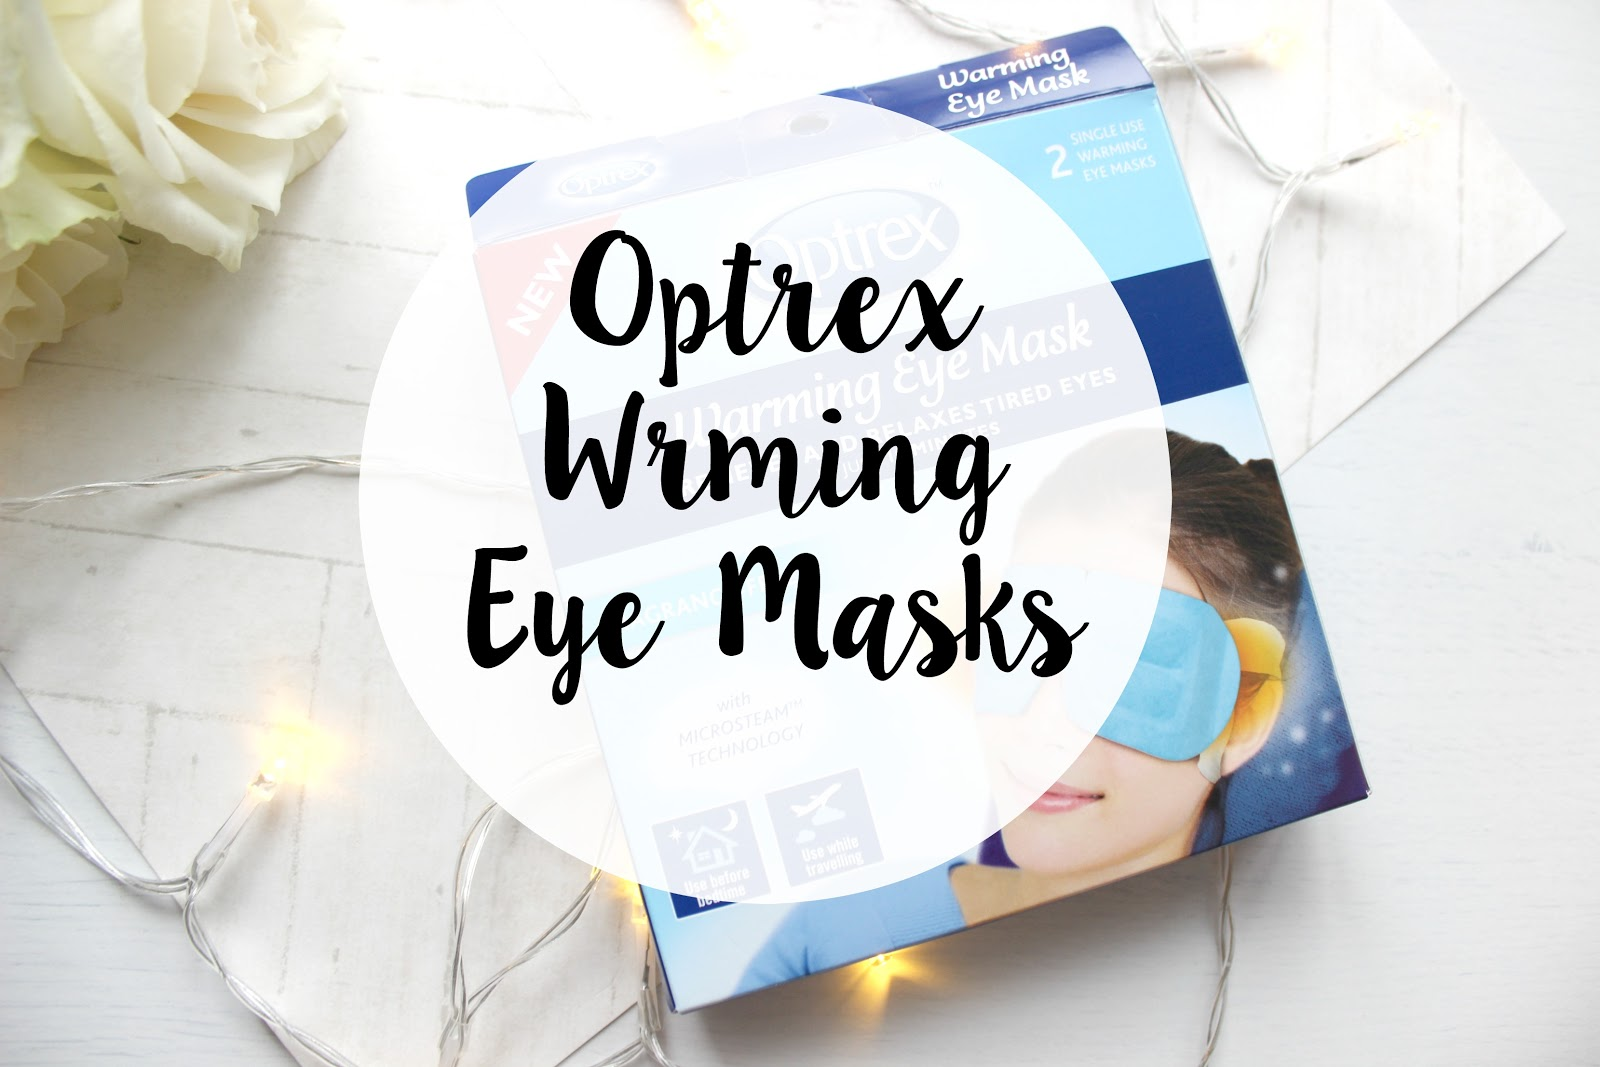 Optrex Warming Eye Masks , eye masks, optrex, warming mask, eyes, travel